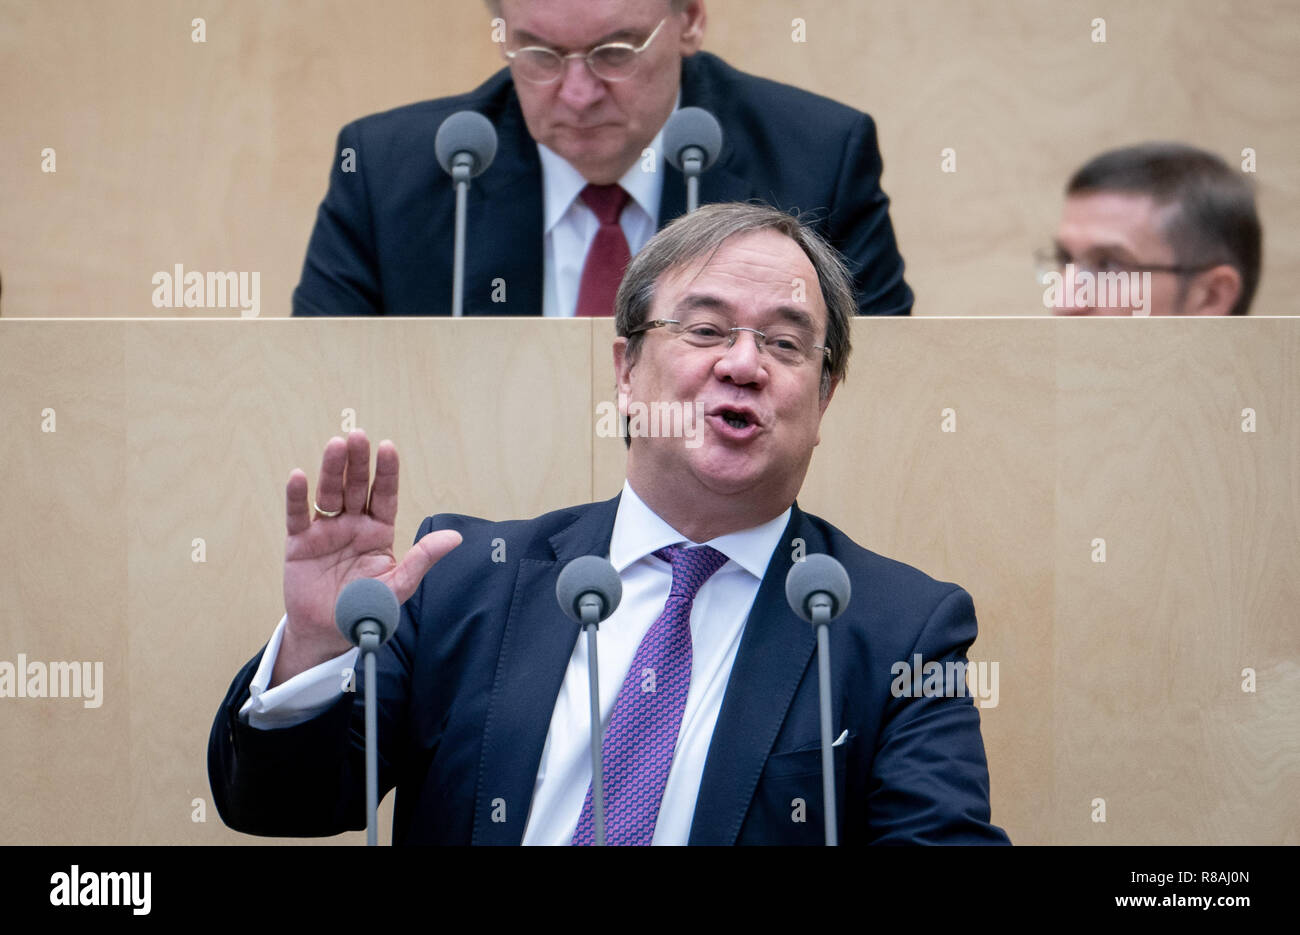 Berlin, Germany. 14th Dec, 2018. Armin Laschet (CDU), Prime Minister of North Rhine-Westphalia, speaks during the session of the Bundesrat. In the last session of the year, the regional chamber finally deals with several laws of the grand coalition, including tightening the rent brake, more further training, higher nursing care contributions in 2019, postponement of the ban on anaesthetised piglet castration. Credit: Kay Nietfeld/dpa/Alamy Live News - Stock Image